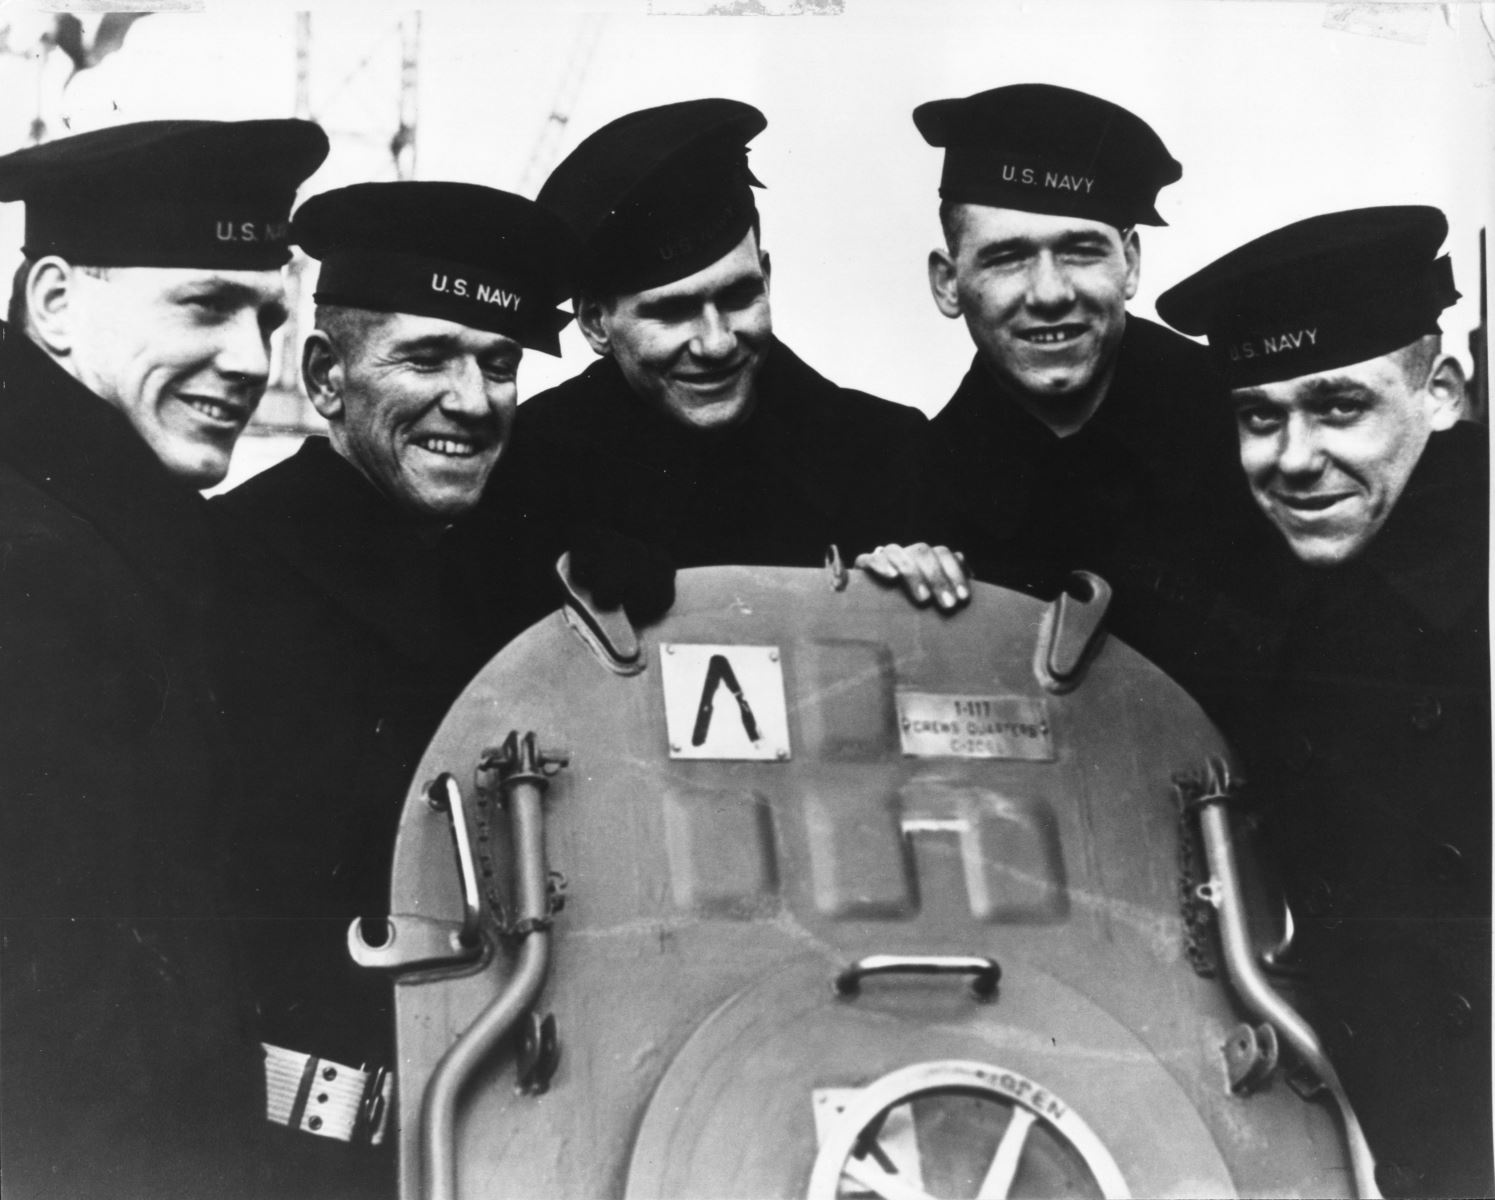 History of the Sullivan Brothers Iowa Veterans Museum